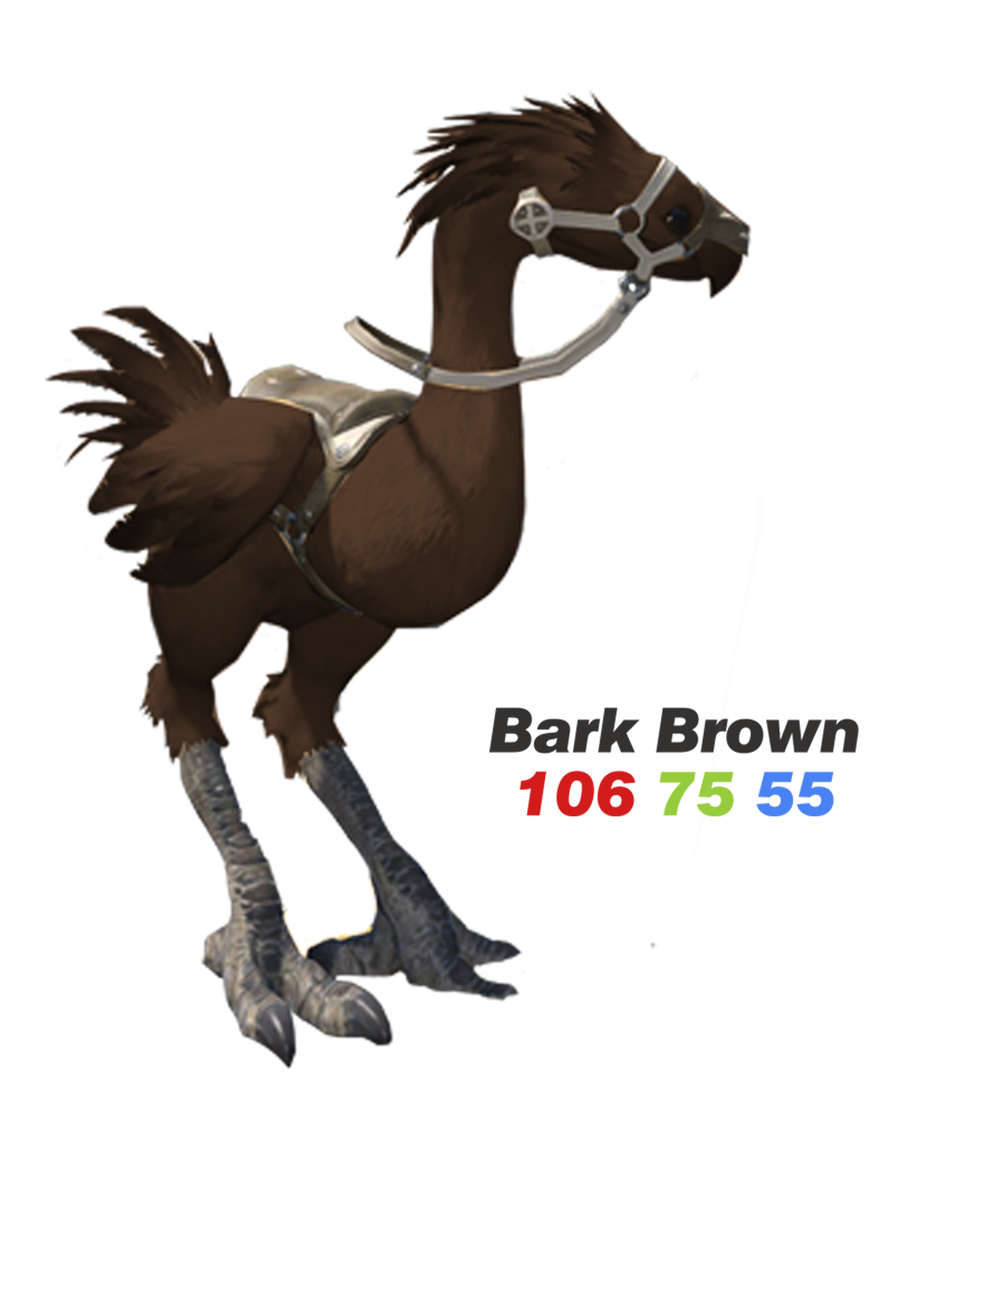 BardBrown.png